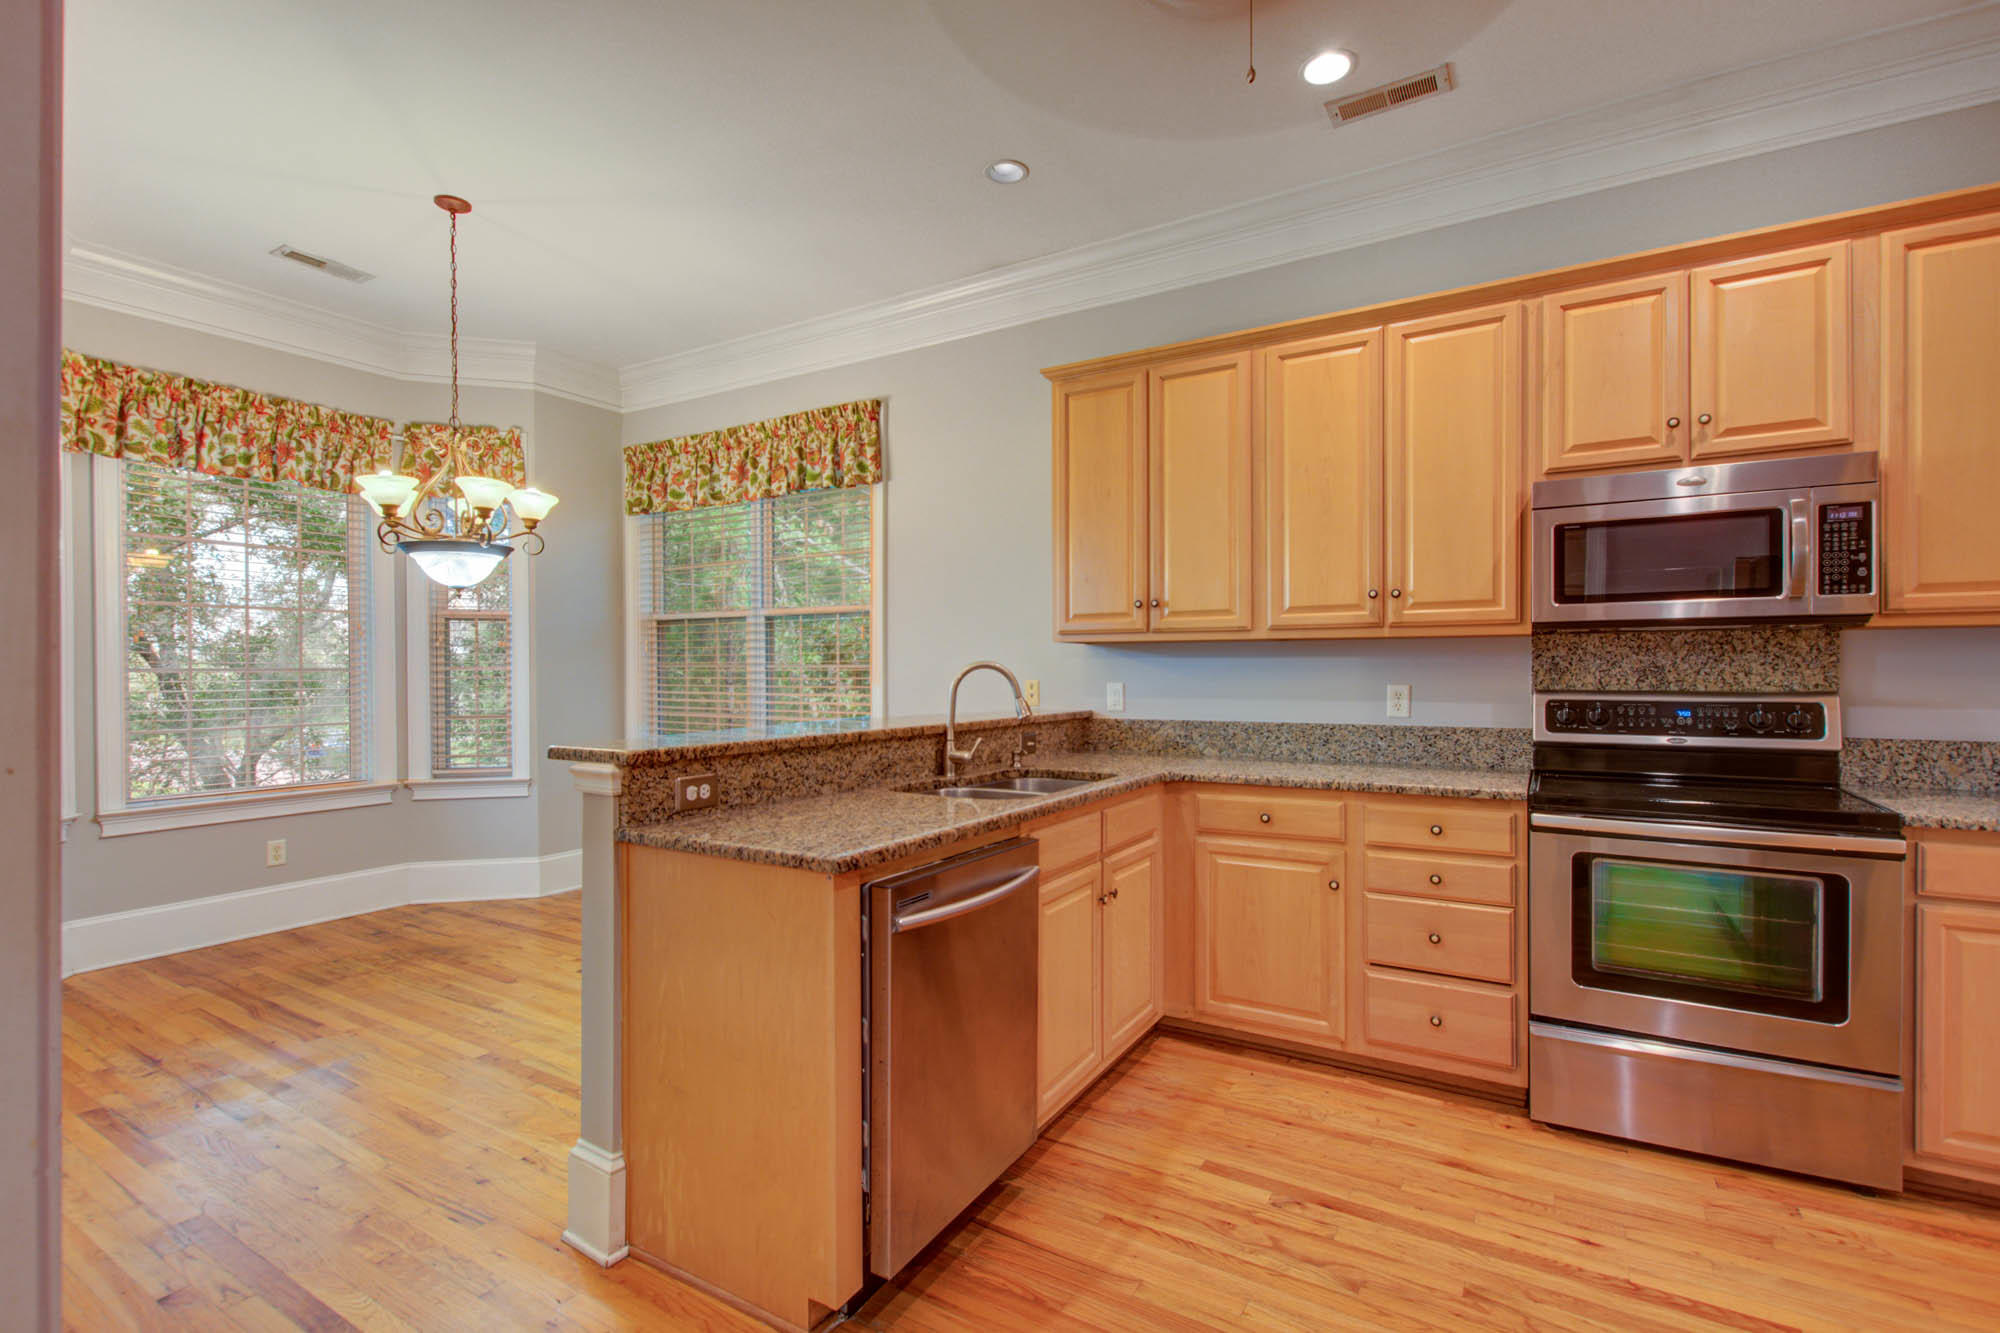 Rivertowne Country Club Homes For Sale - 1741 Rivertowne Country Club, Mount Pleasant, SC - 33